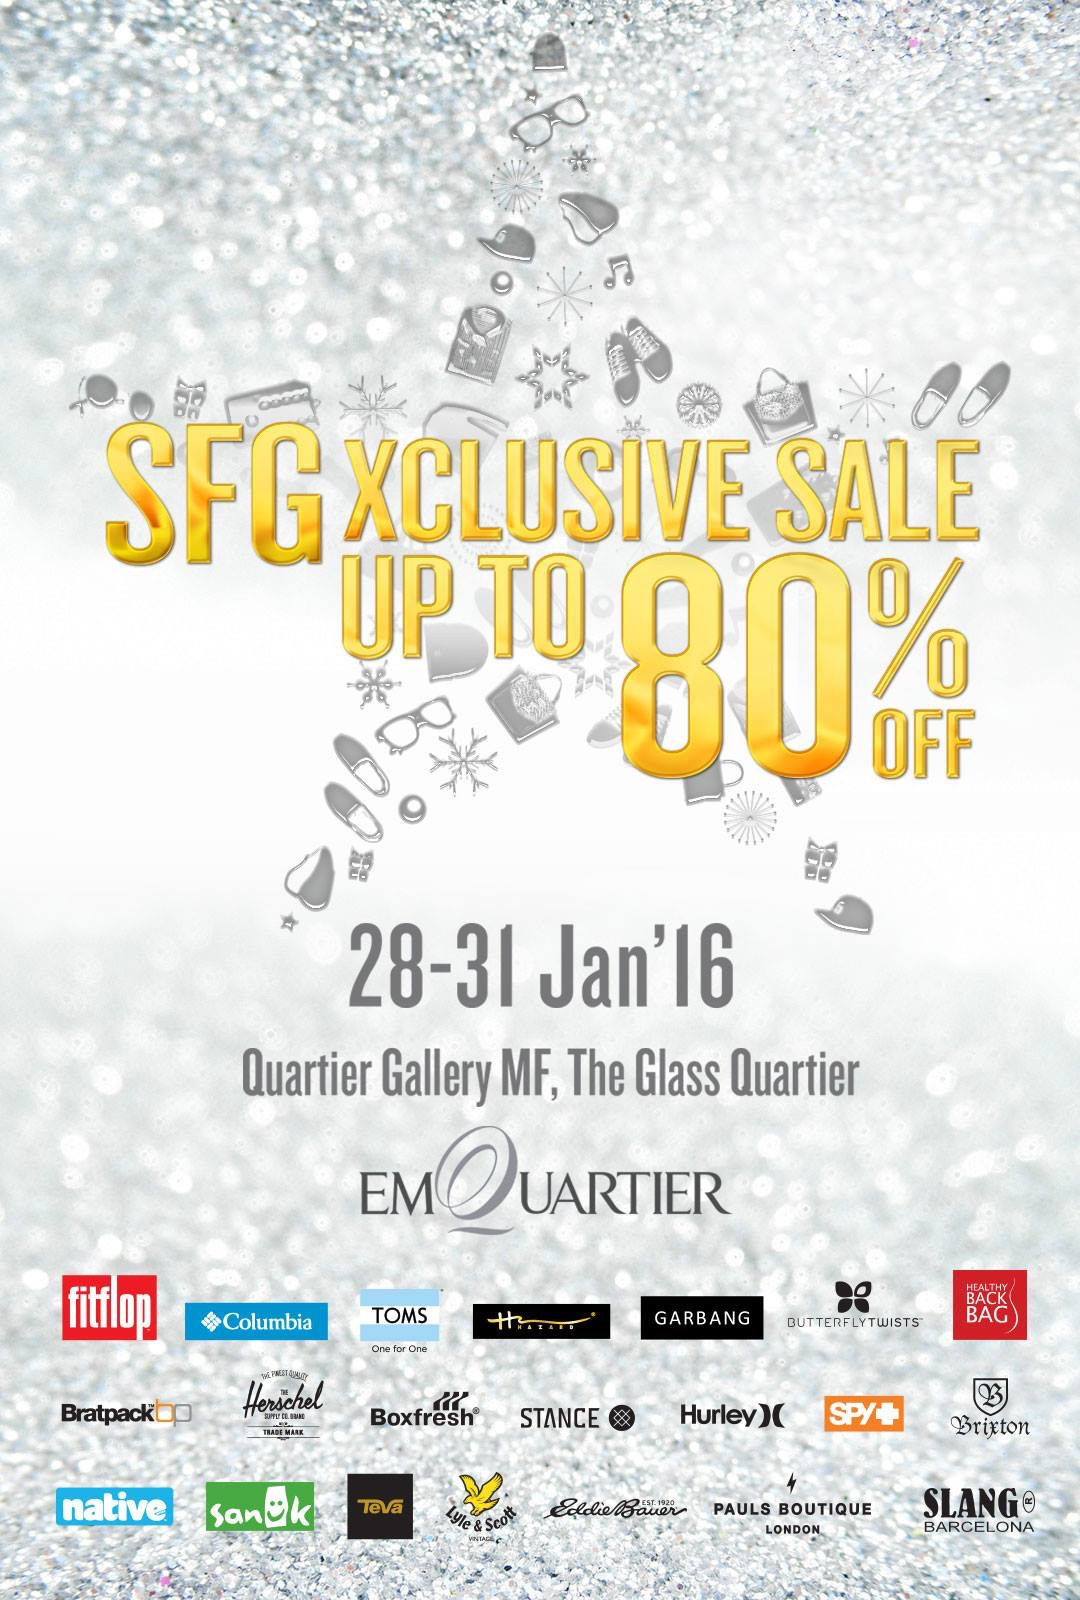 Promotion Fitflop Sale 50% @ Xclusive Sale Fashion Destinion Sale 2016 up to 80%